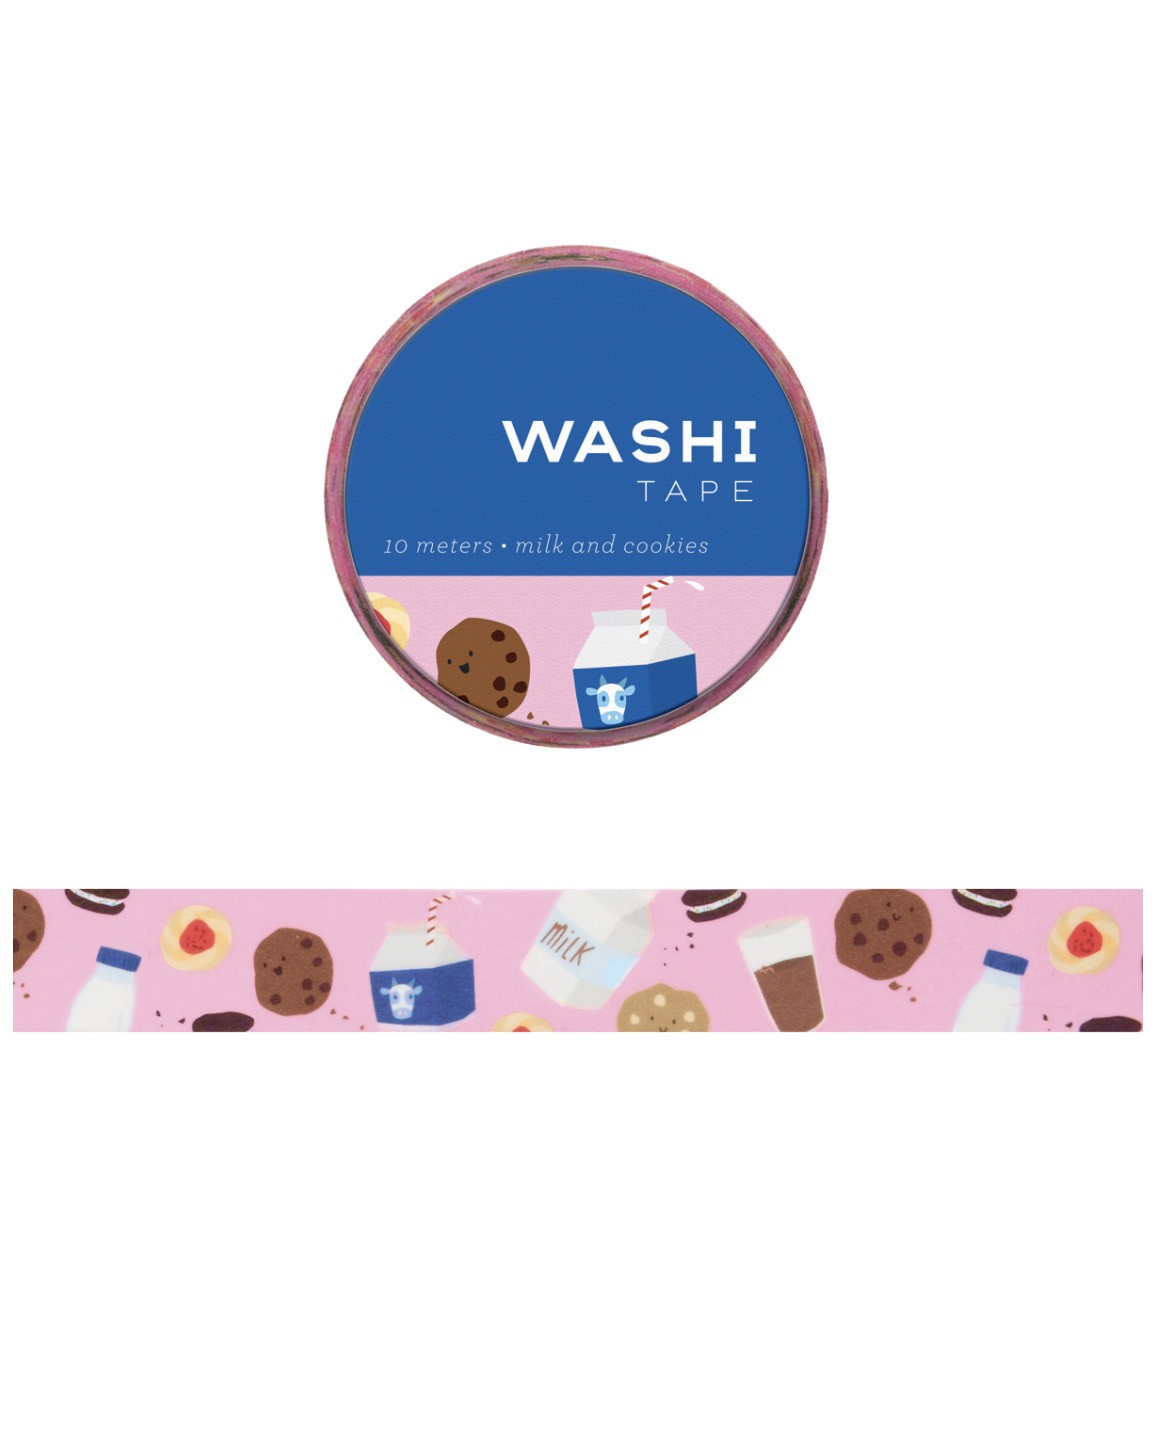 Washi tape - Milk and Cookies